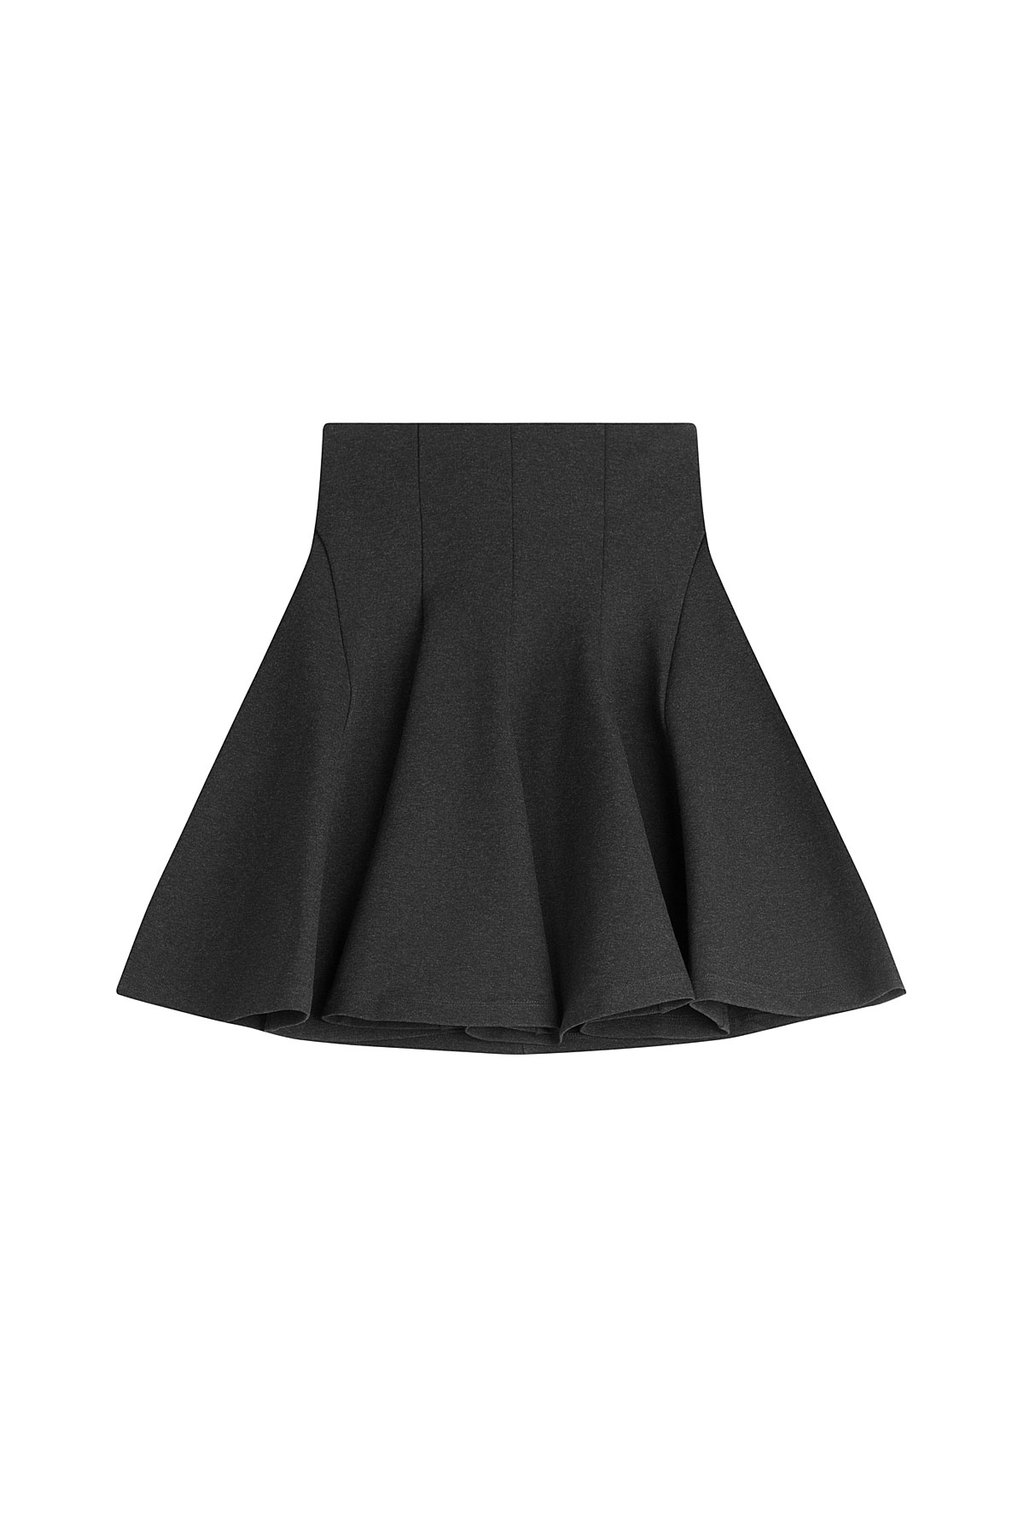 Flared Skirt Grey - length: mini; pattern: plain; fit: loose/voluminous; waist: mid/regular rise; predominant colour: black; occasions: casual; style: a-line; hip detail: structured pleats at hip; pattern type: fabric; texture group: woven light midweight; season: a/w 2015